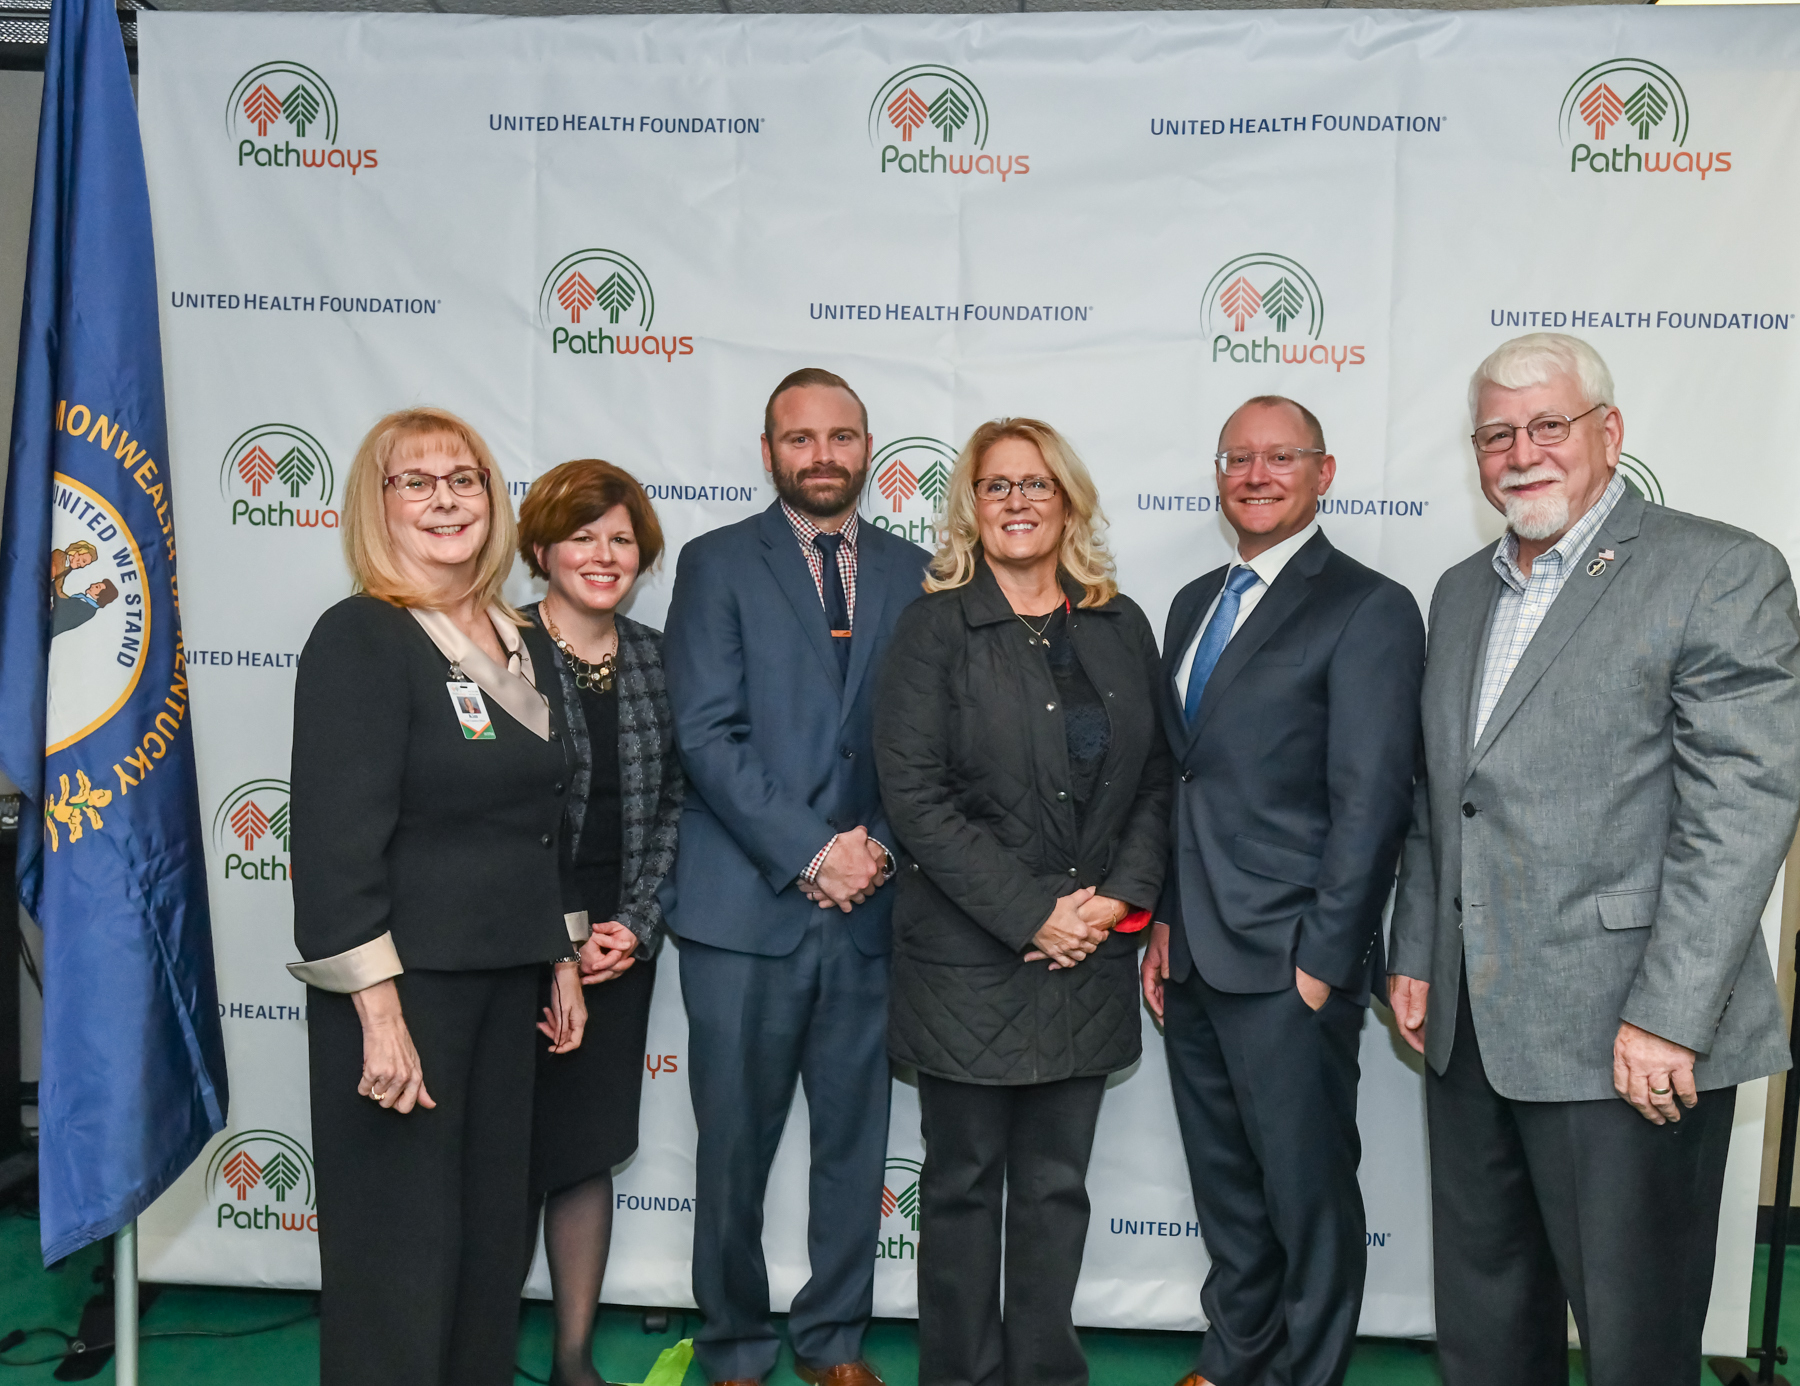 Pathways And United Health Foundation Launch Partnership To Improve